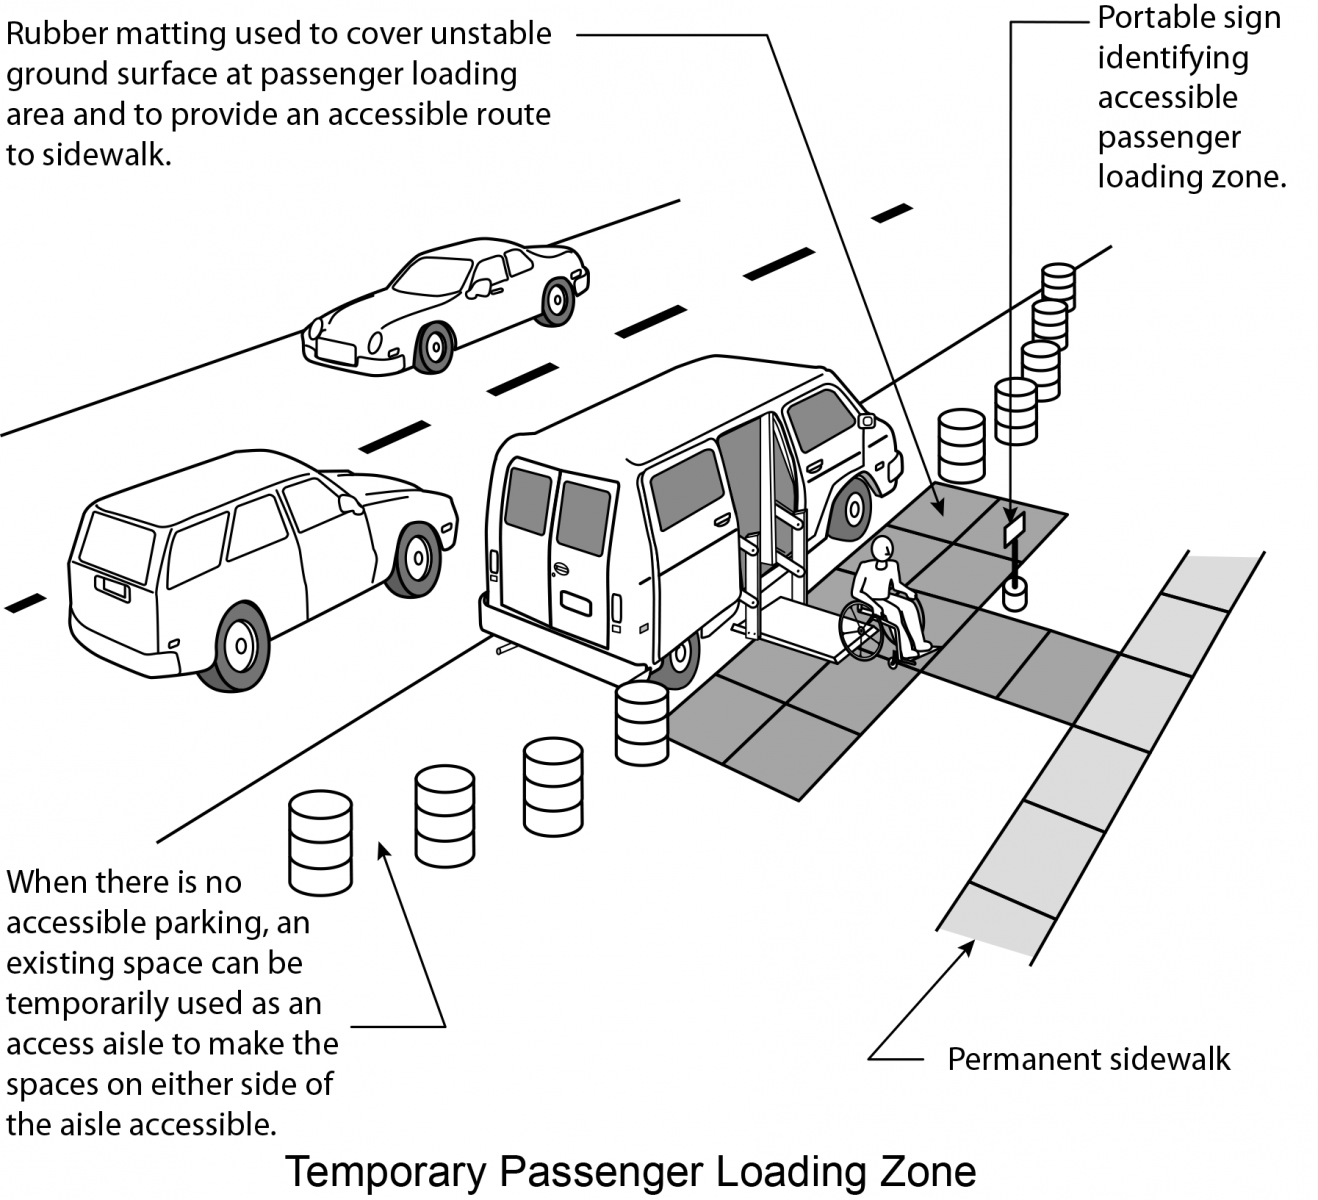 Figure 10: An existing space is blocked off with barrels. Rubber matting covers unstable ground surface at passenger loading area to provide an accessible route to the sidewalk. A portable sign identifies the accessible loading zone.